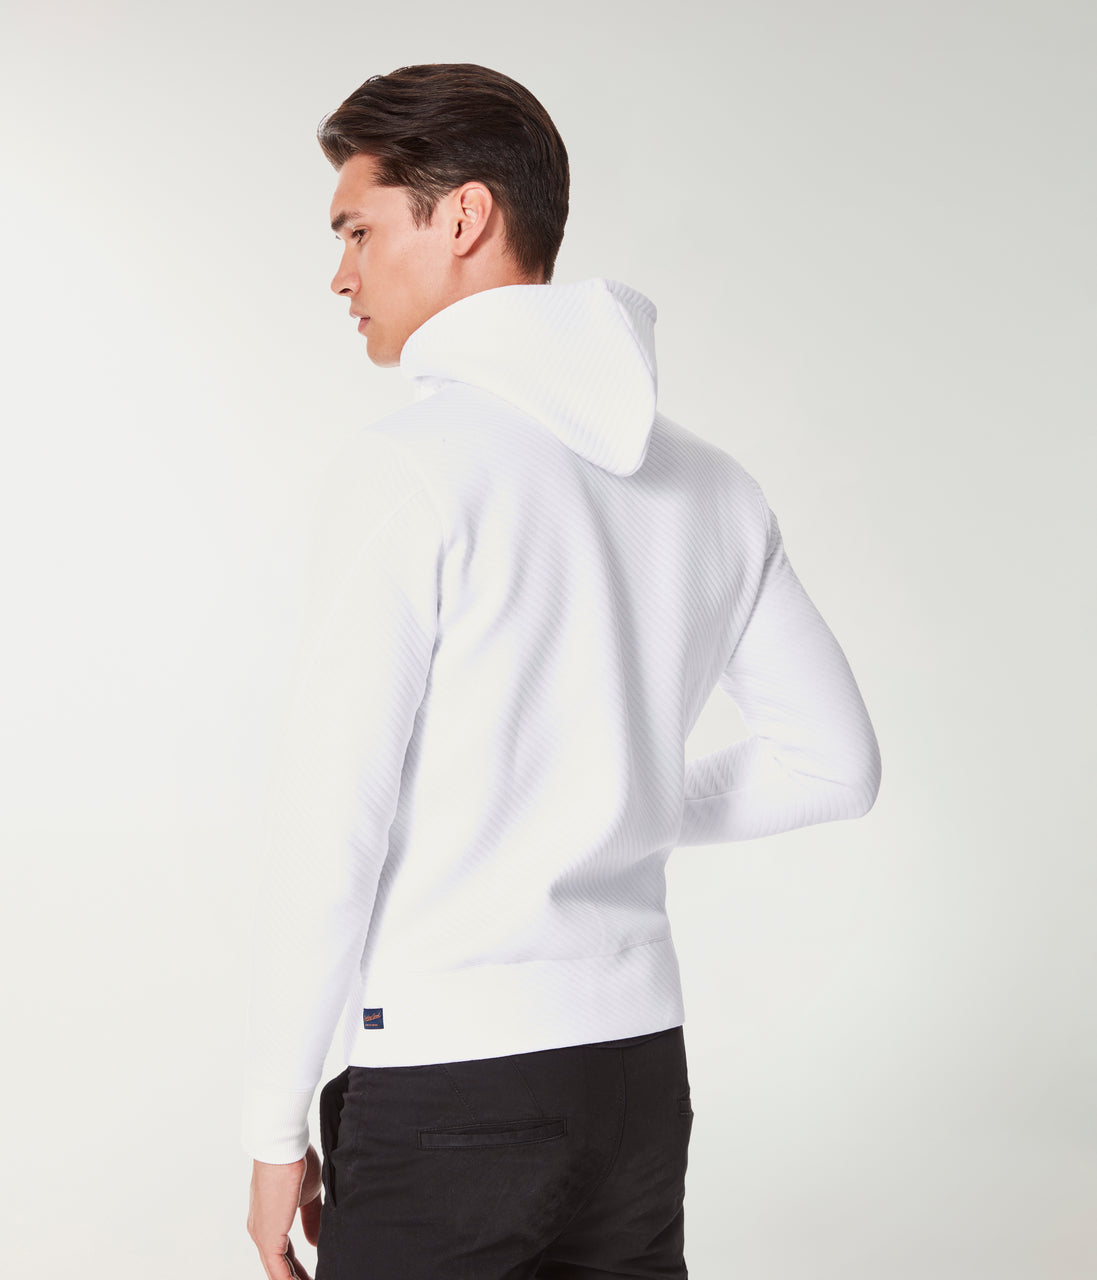 Twill Quilt Jacquard Knit Pro Zip Hoodie - White - Good Man Brand - Twill Quilt Jacquard Knit Pro Zip Hoodie - White